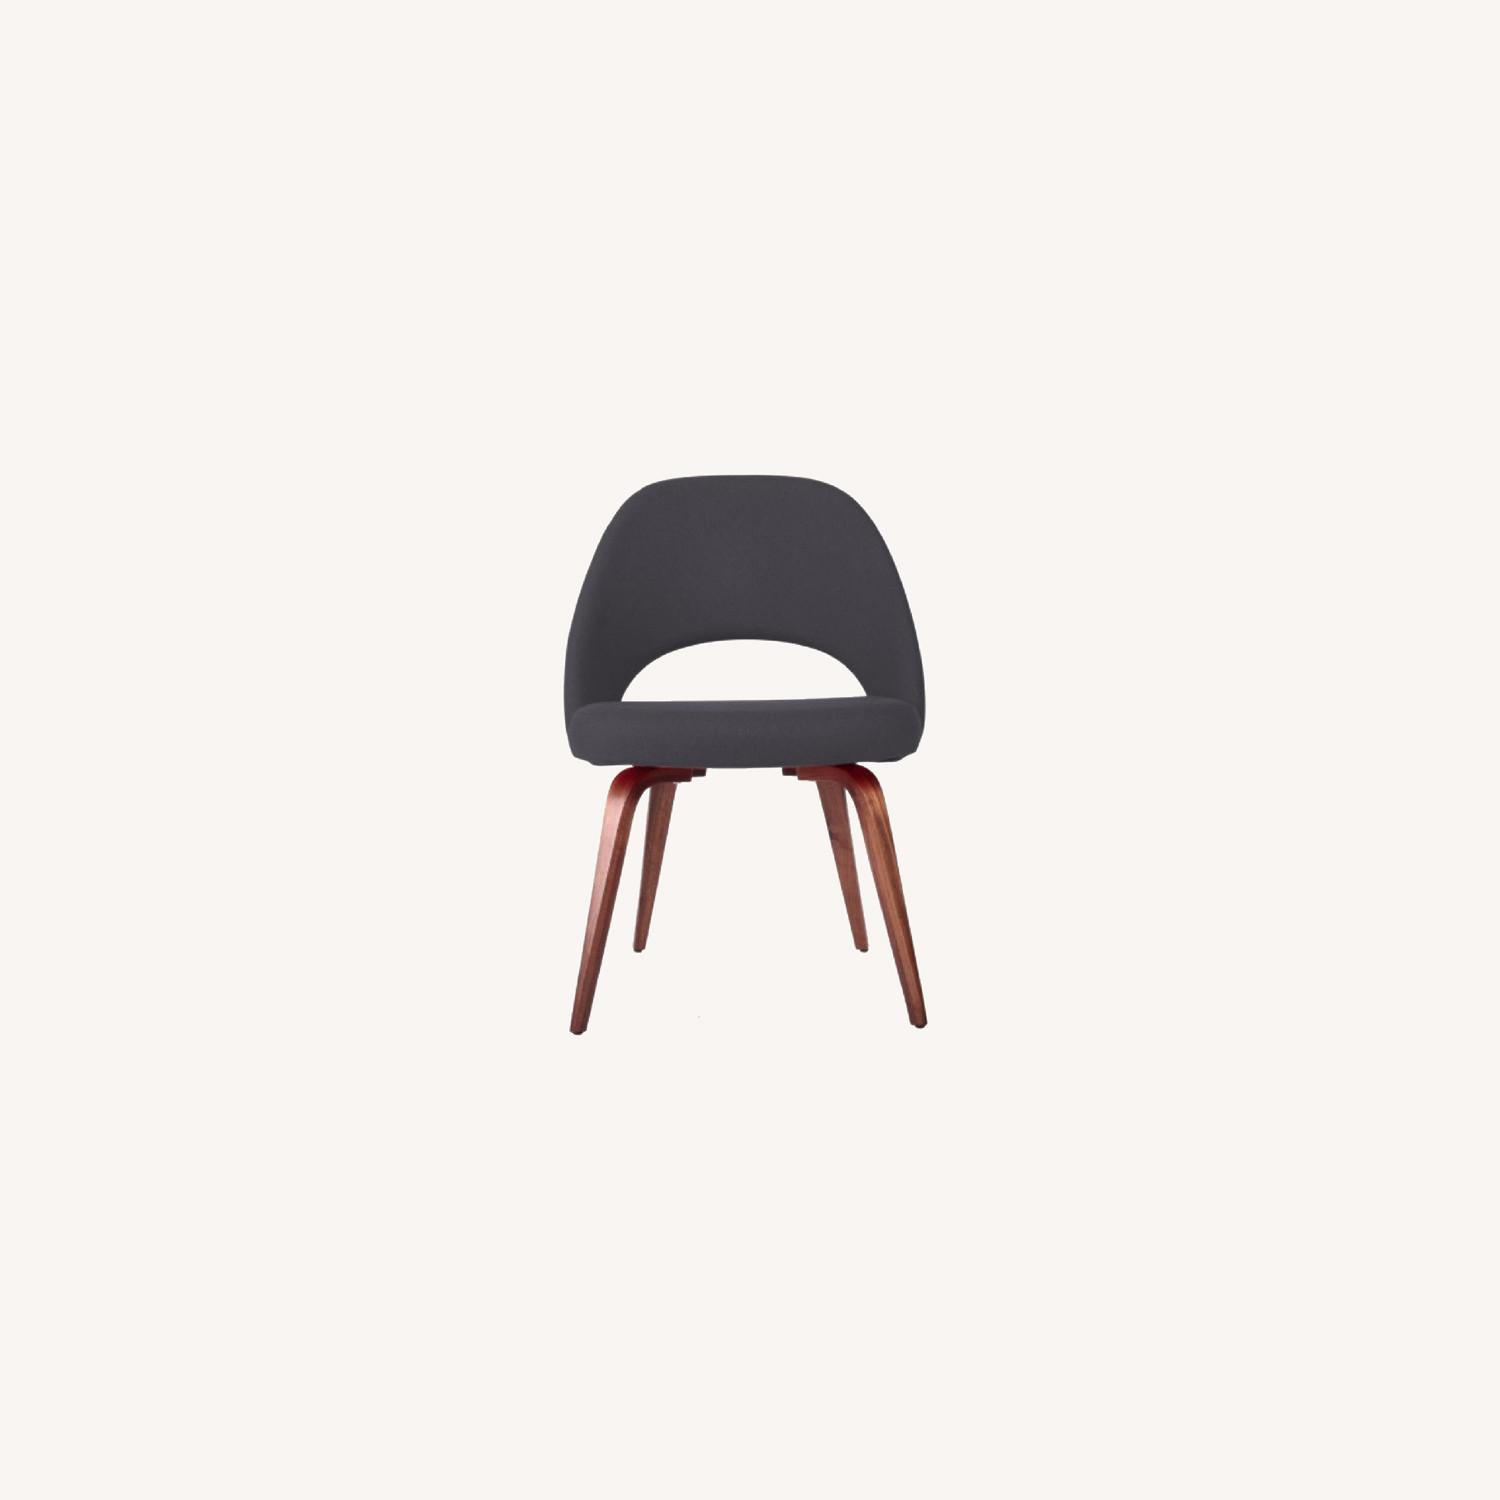 Upholstered Dining Chairs Mid-century Modern Style - image-0